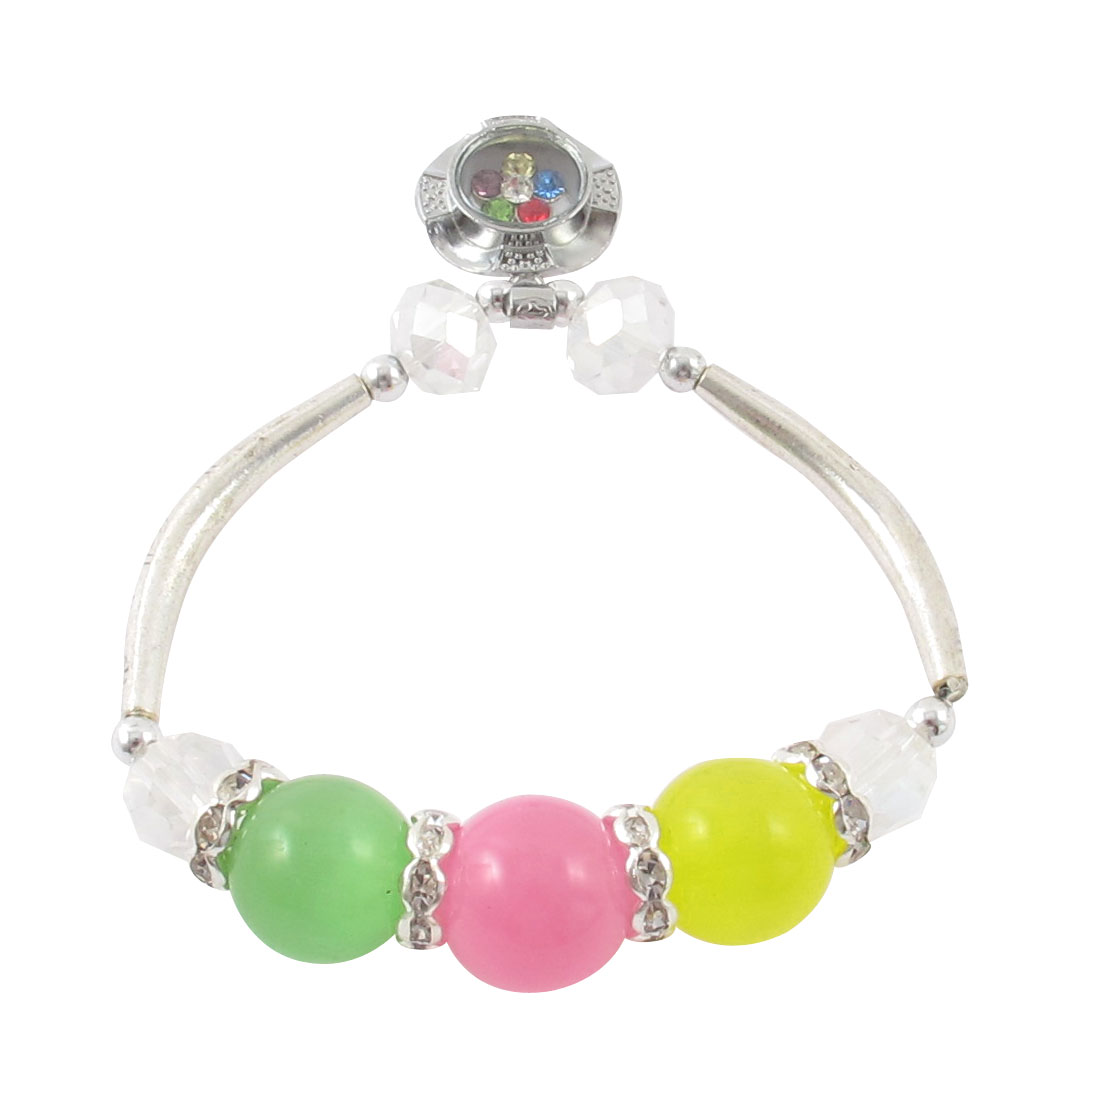 Lady Faux Cat Eyes Stone Detail Stretchy Beading Wrist Bracelet Yellow Green Pink